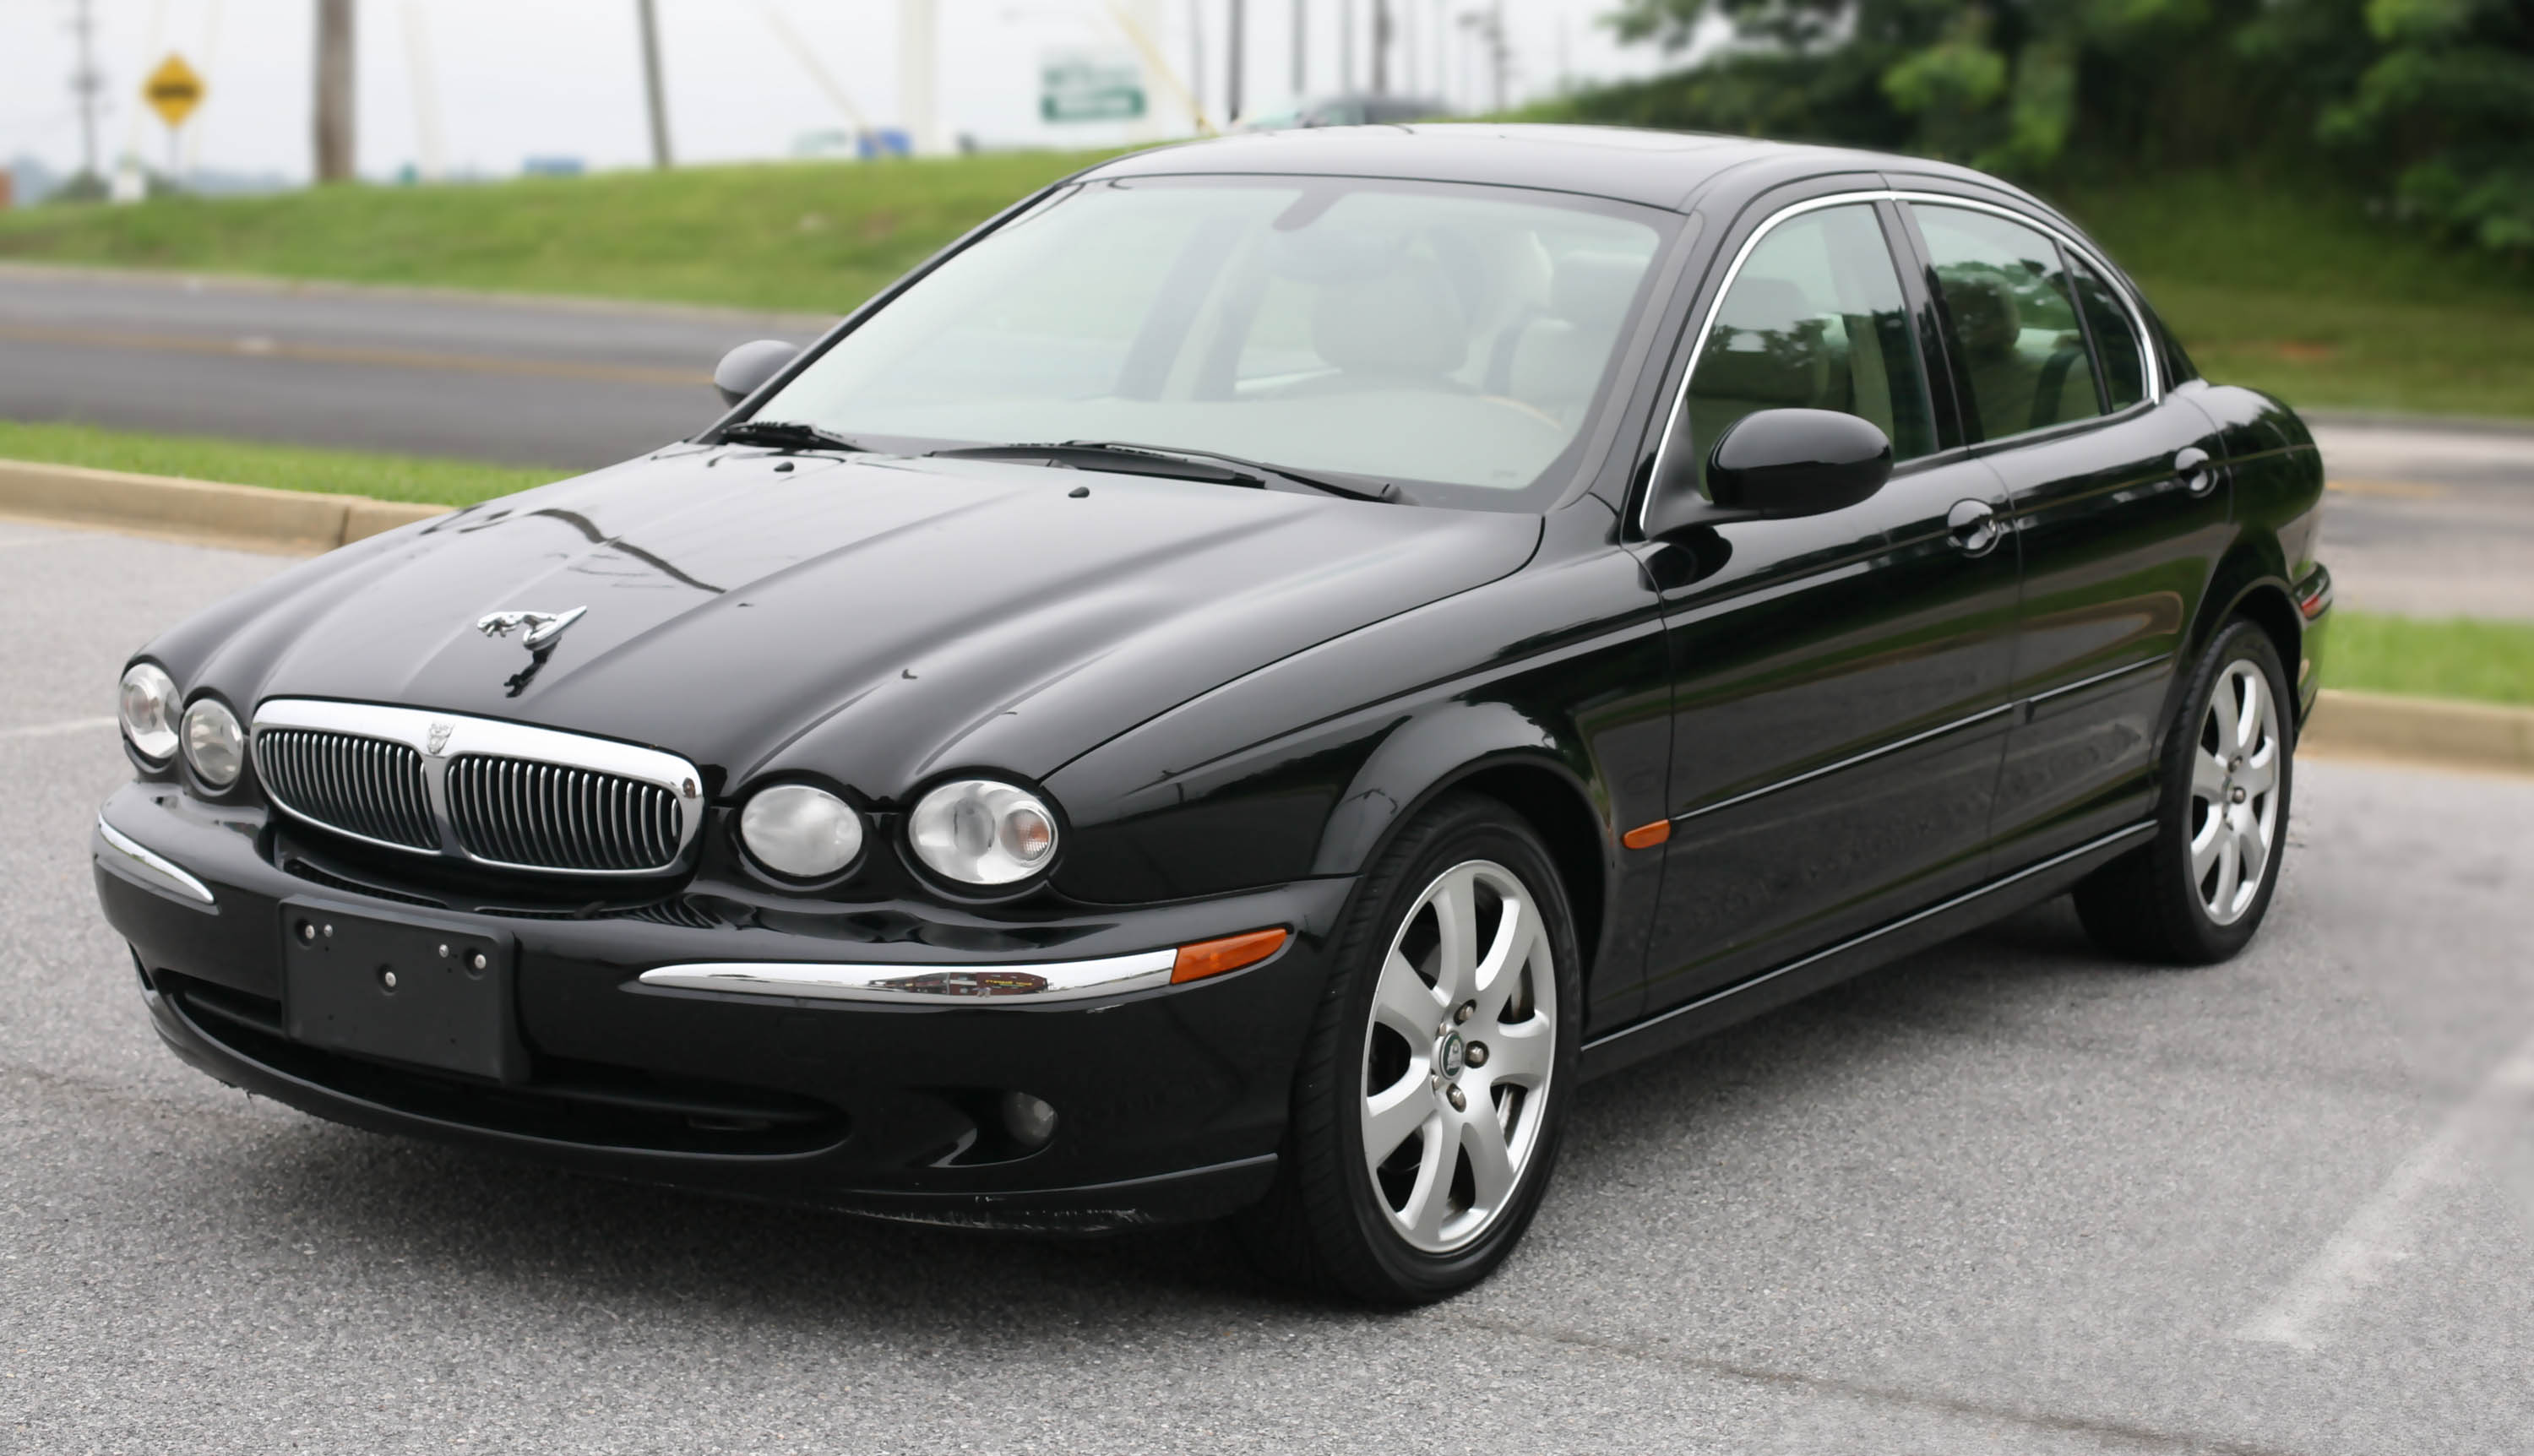 Jaguar X-type #2